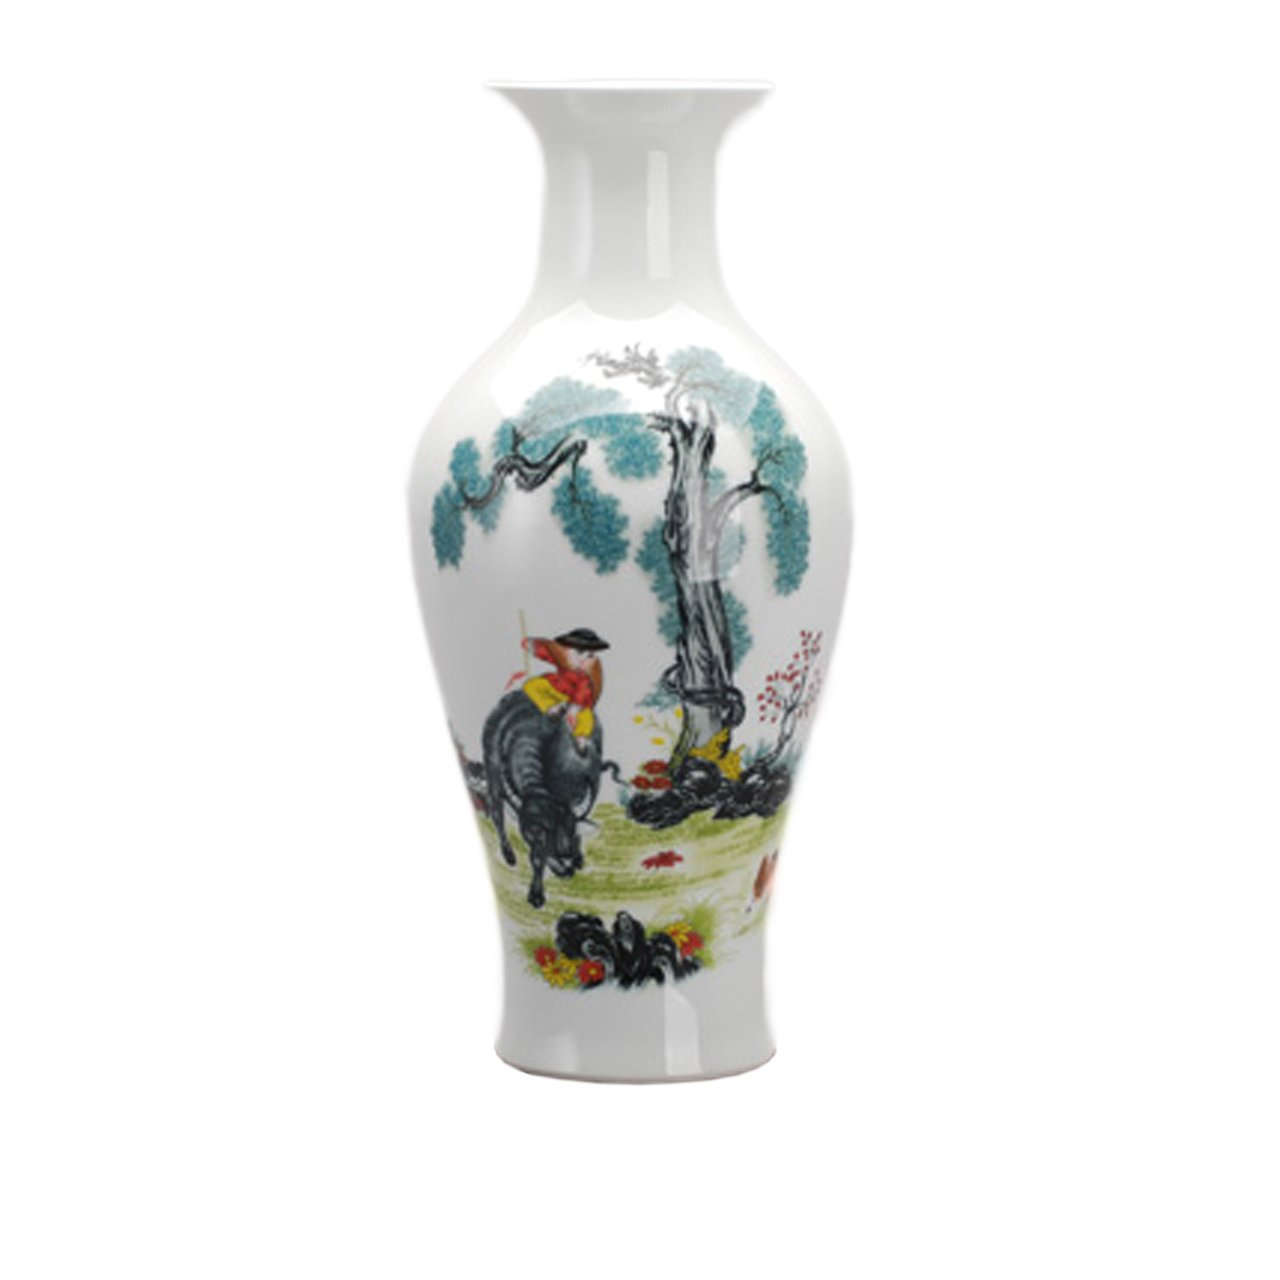 Dahlia Chinese Famille Rose Porcelain Farm Boy Riding Bull Flower Vase, 15 Inches, Fish Tail Vase